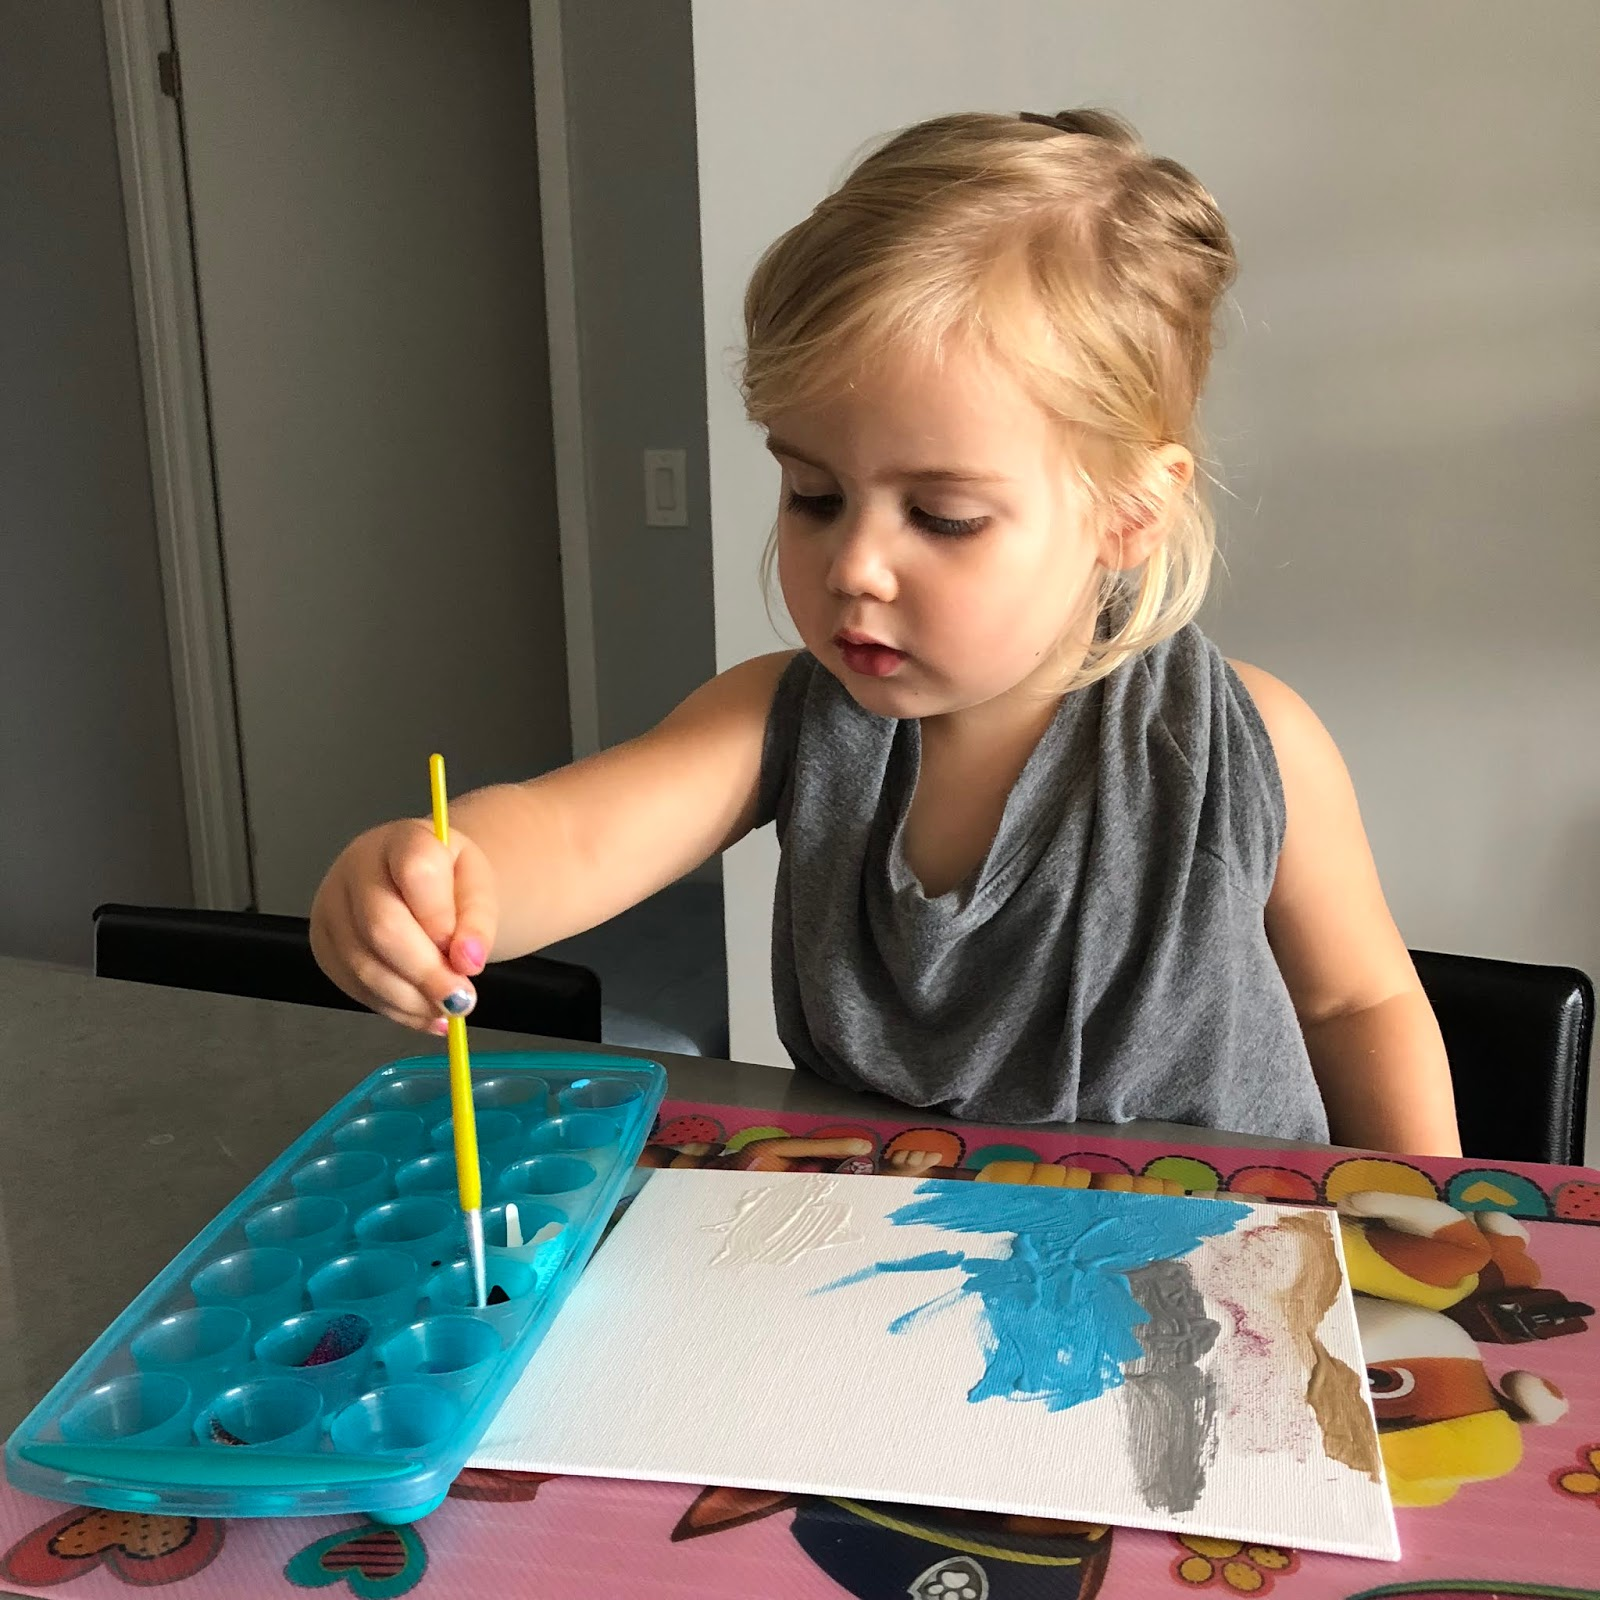 Easy At Home Preschooler Paint Station Plus Painting Smock DIY